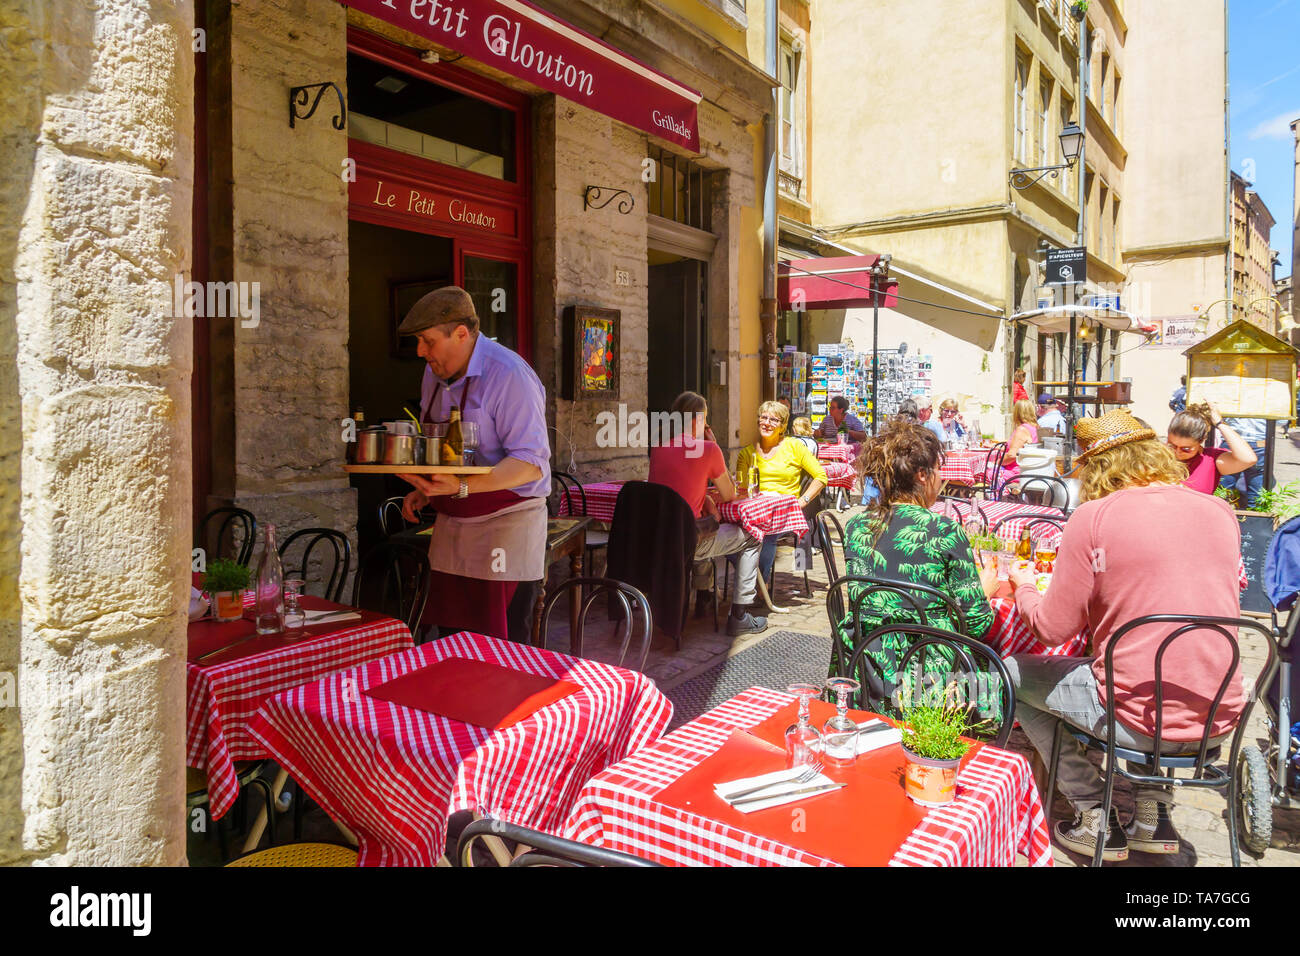 Lyon, France - May 10, 2019: Street and cafe scene, with locals and visitors, in Old Lyon, France - Stock Image